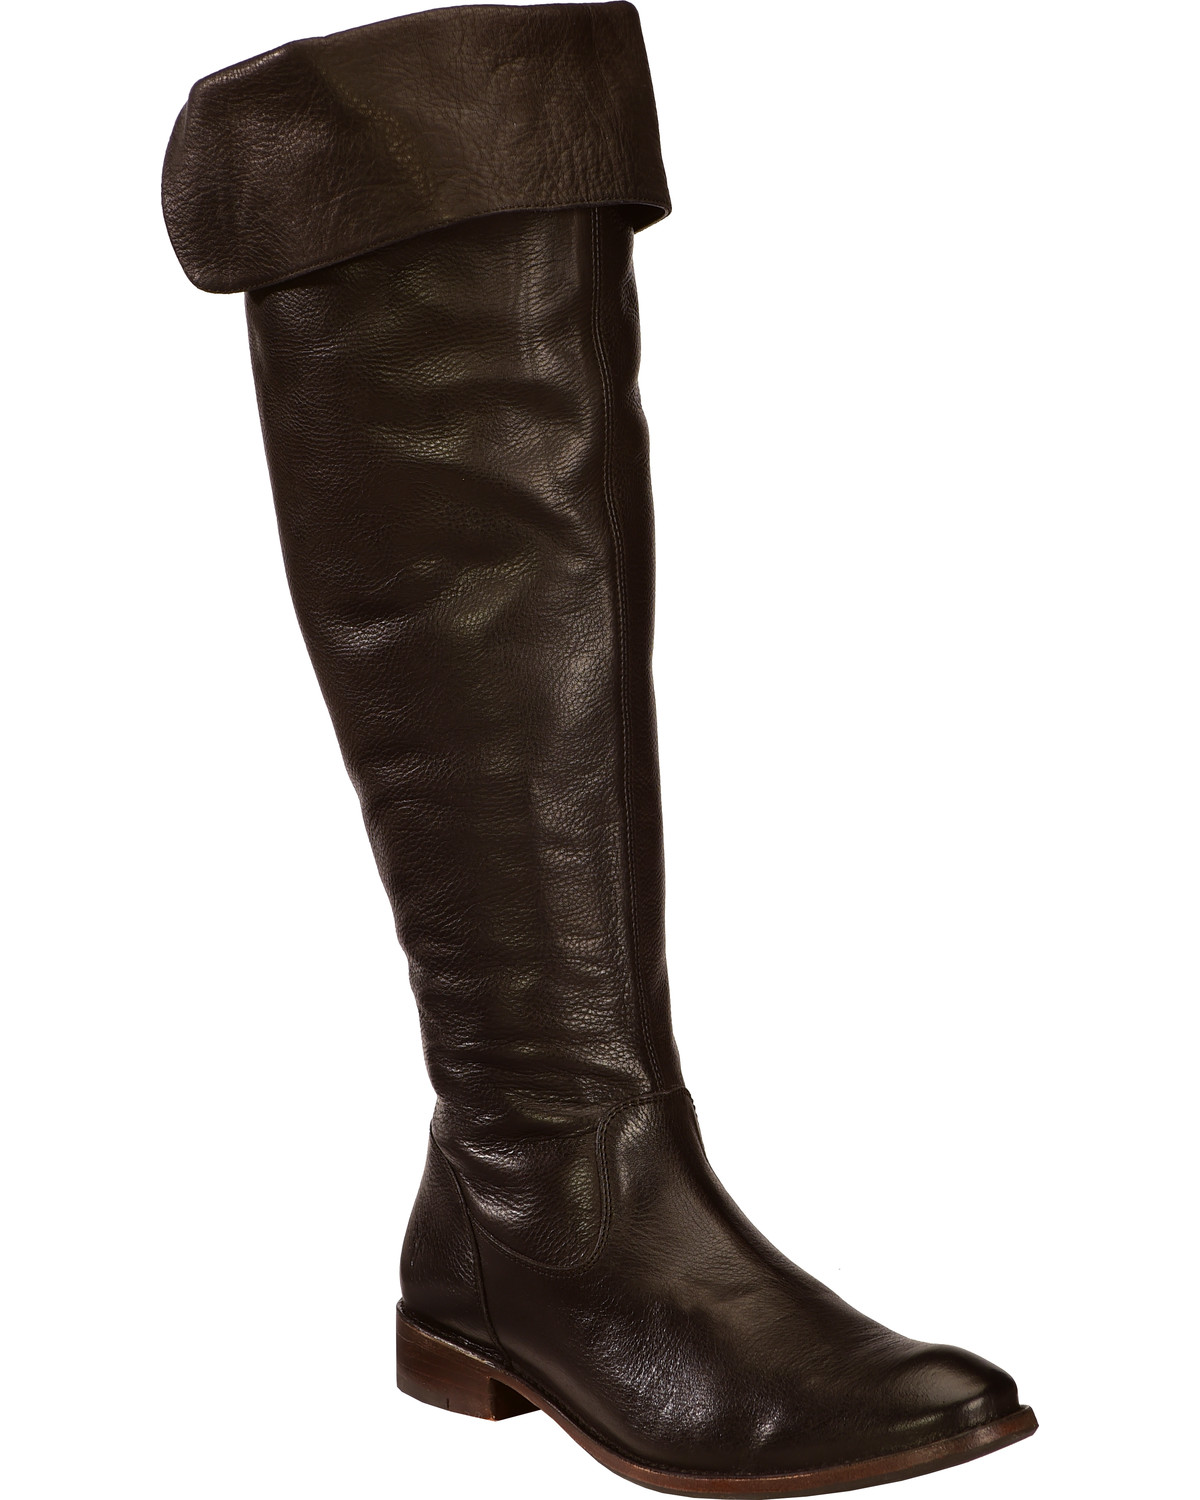 Knee Riding Boots - Round Toe | Boot Barn